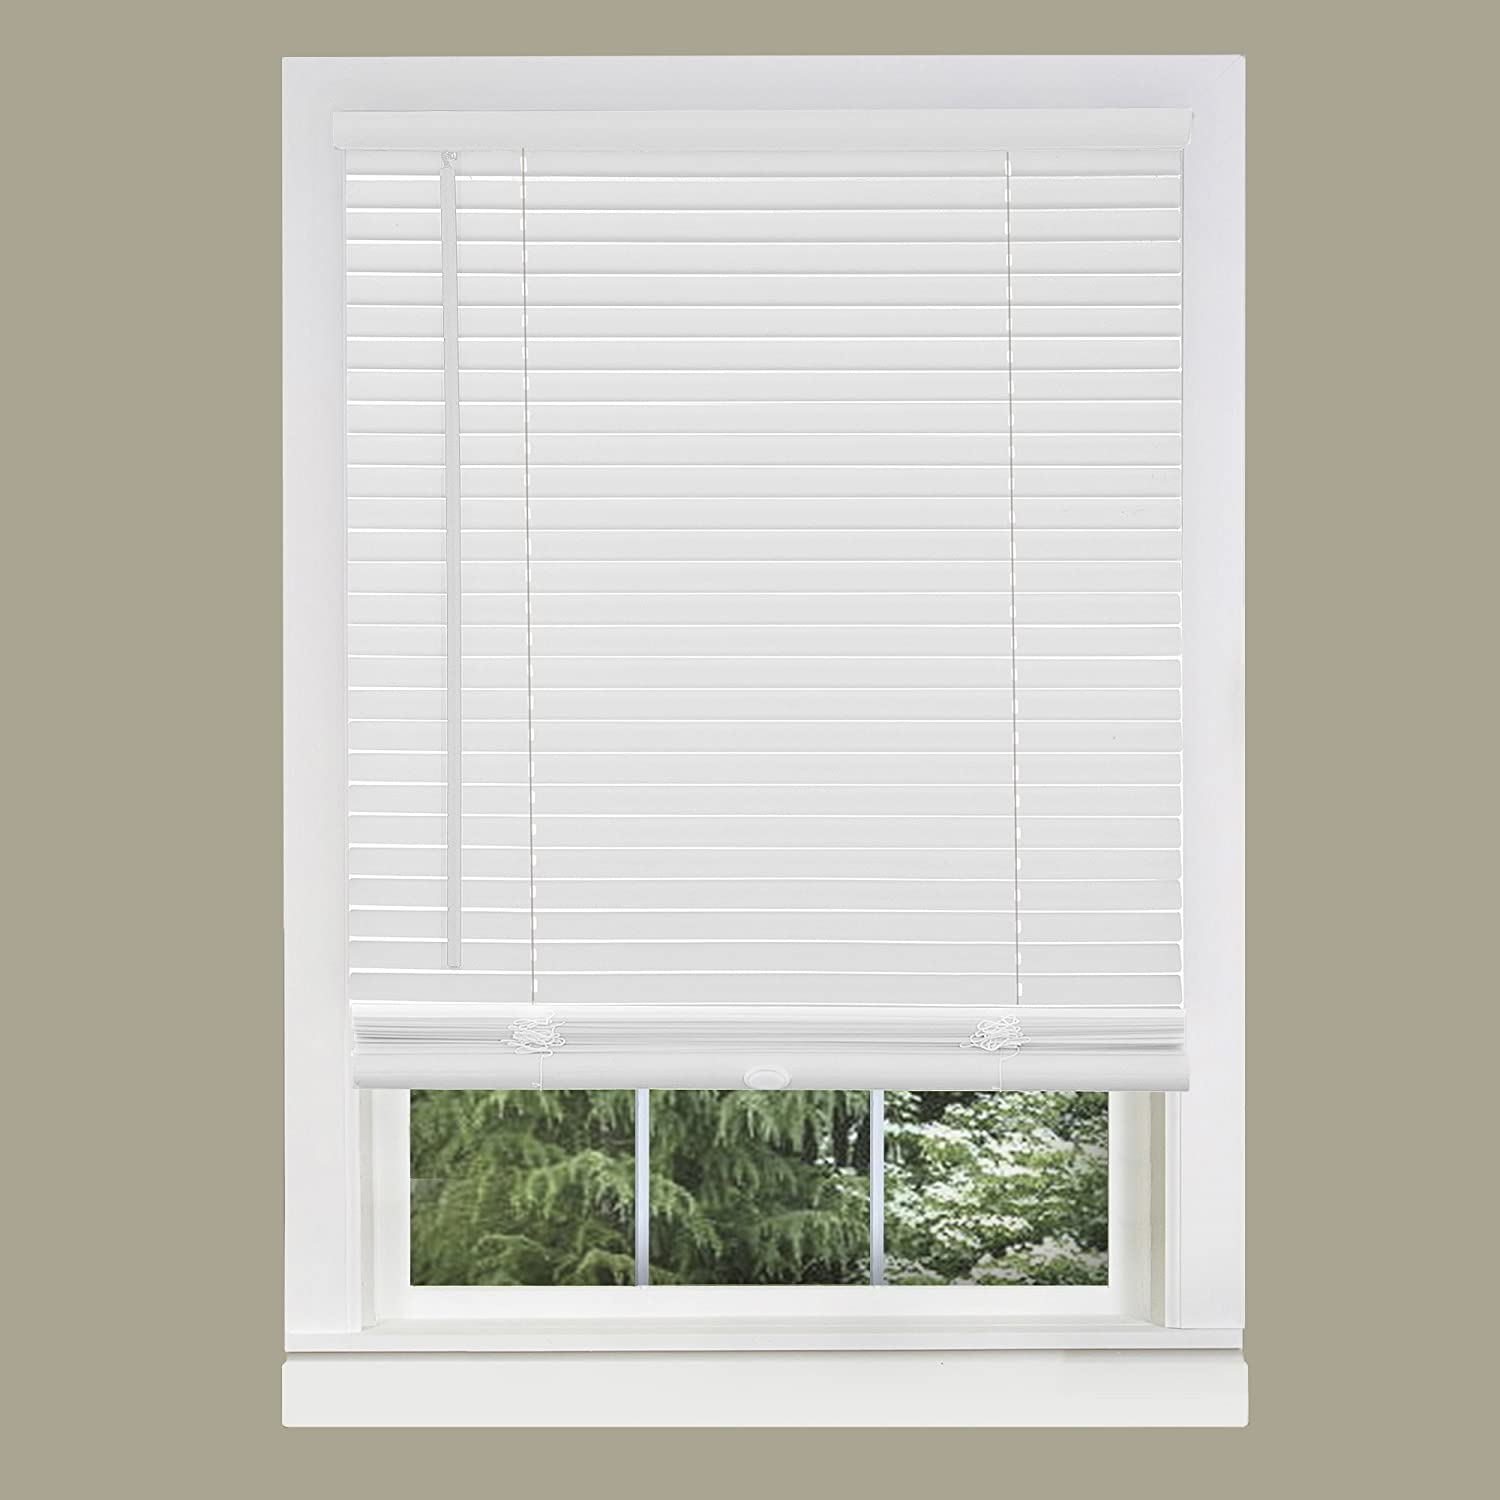 Achim Home Furnishings MSG223AL06 Morningstar G2 Cordless Blinds, 23 x 64, Alabaster 23 x 64